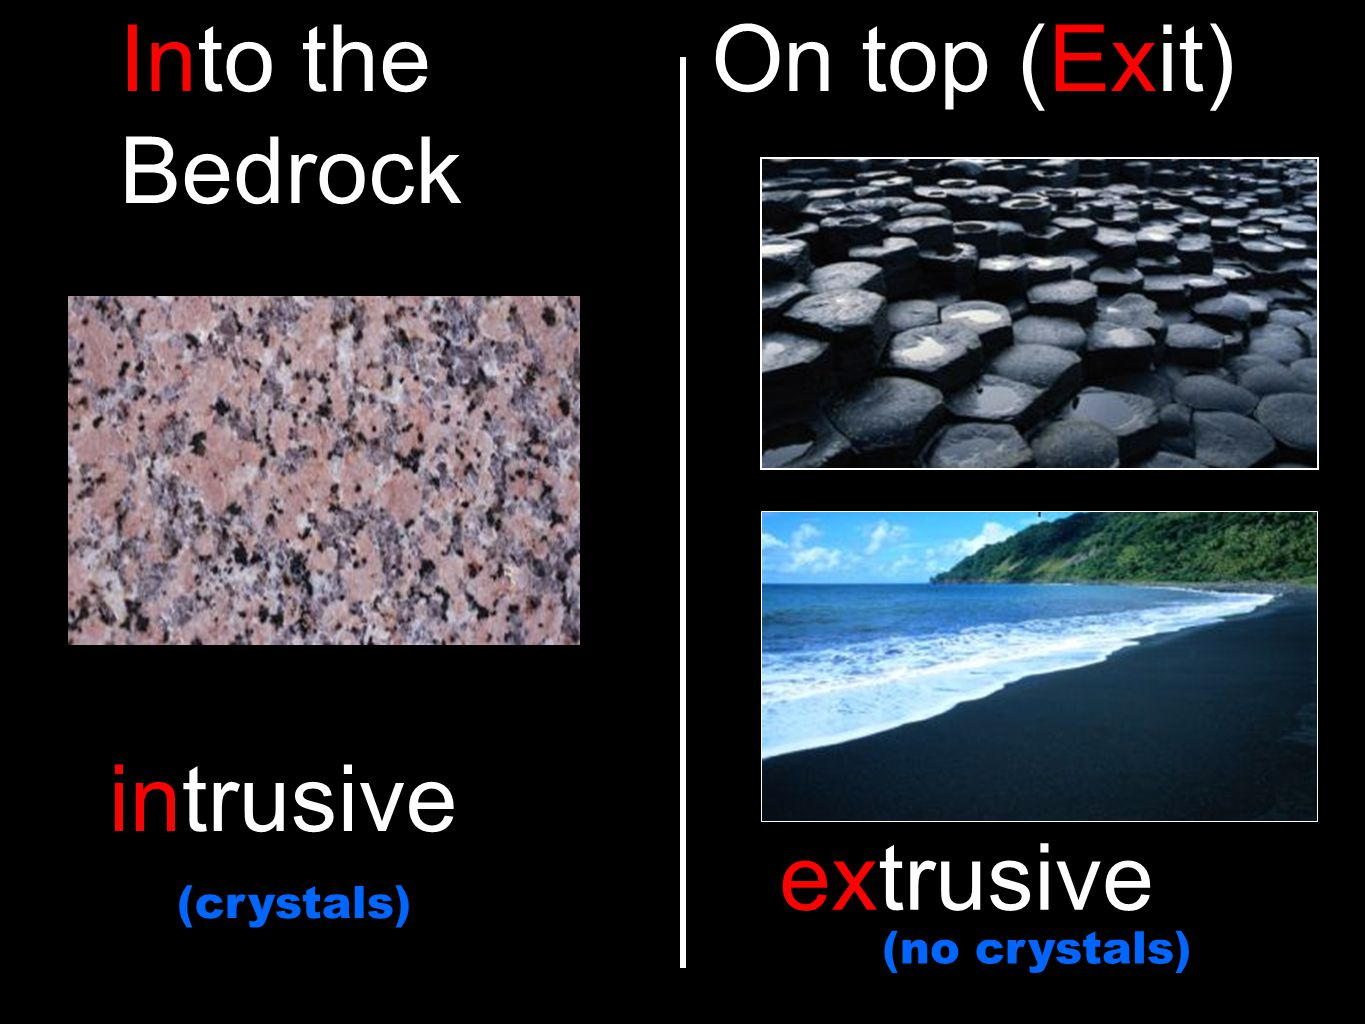 intrusive extrusive Into the Bedrock On top (Exit) (crystals) (no crystals)